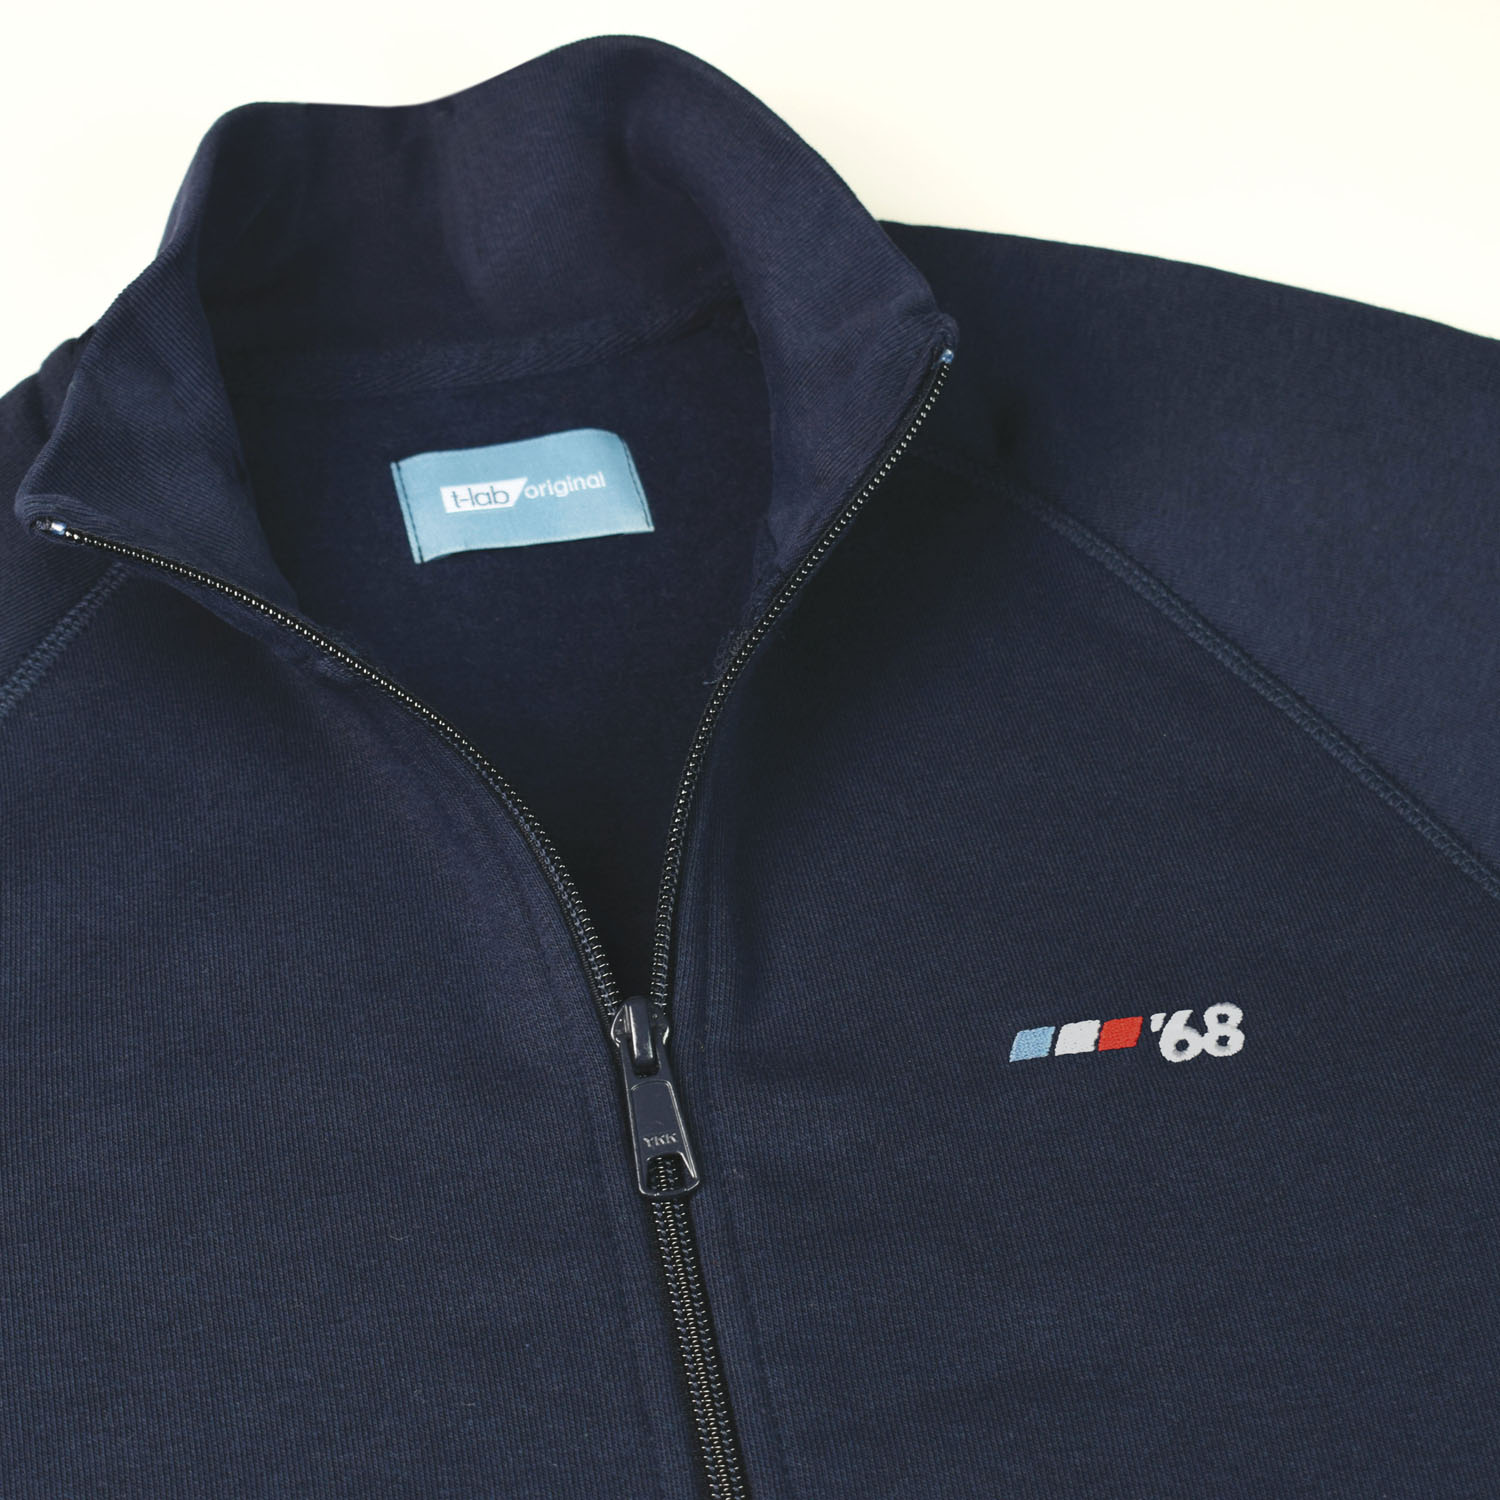 T-lab Grenoble '68 mens zipped sweat navy detail2